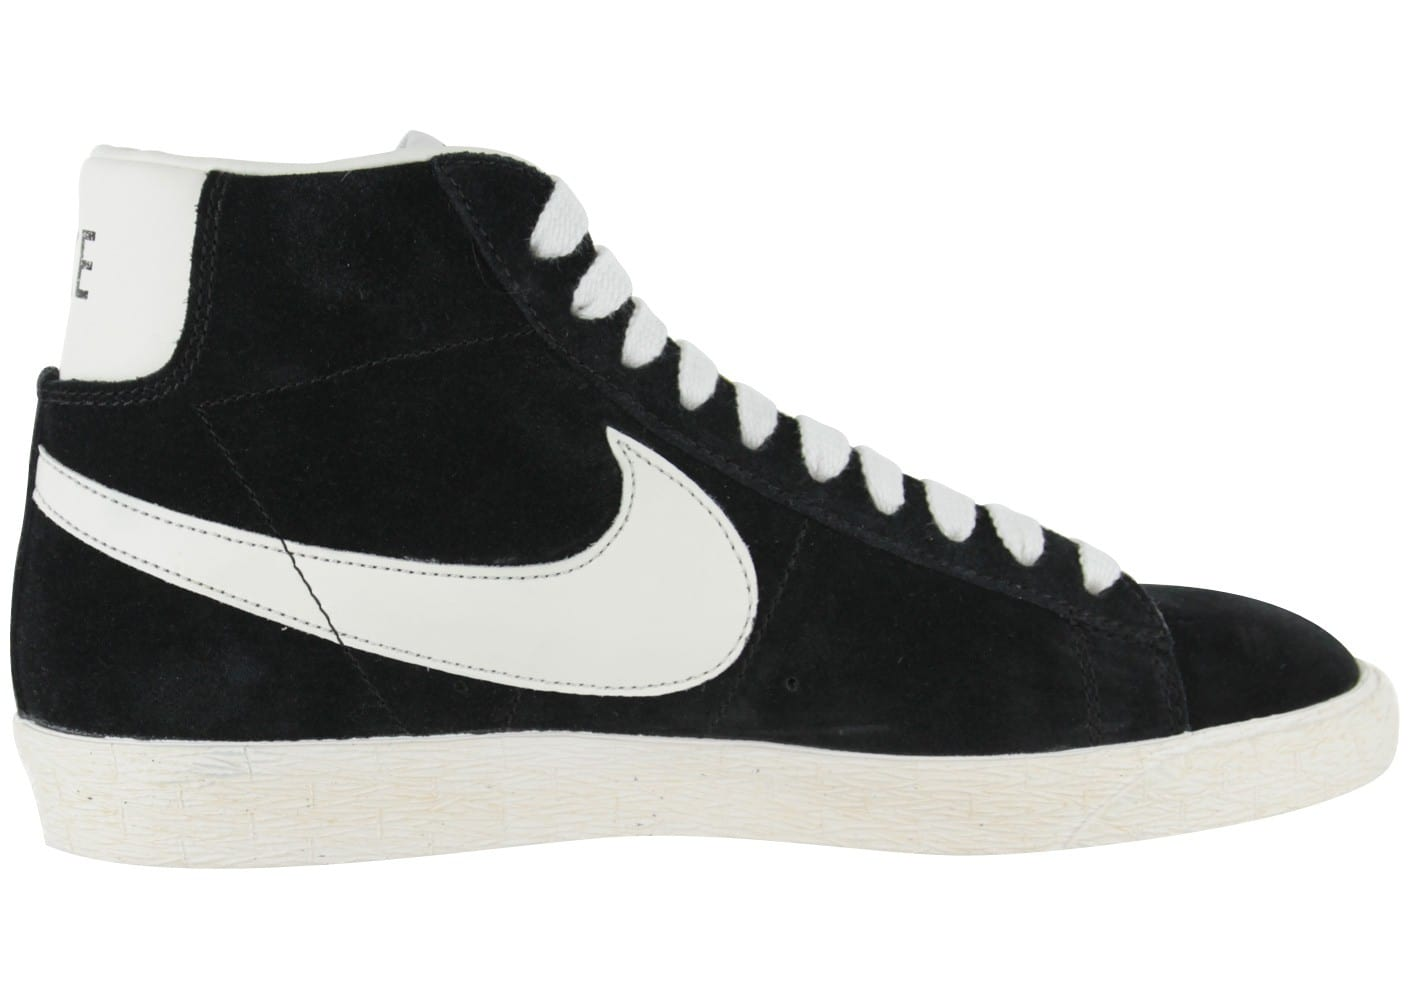 new styles ae3fa fdc12 ... release date nike blazer mid metrique baskets homme 904211 100 nike  homme noir blanc blazer mid